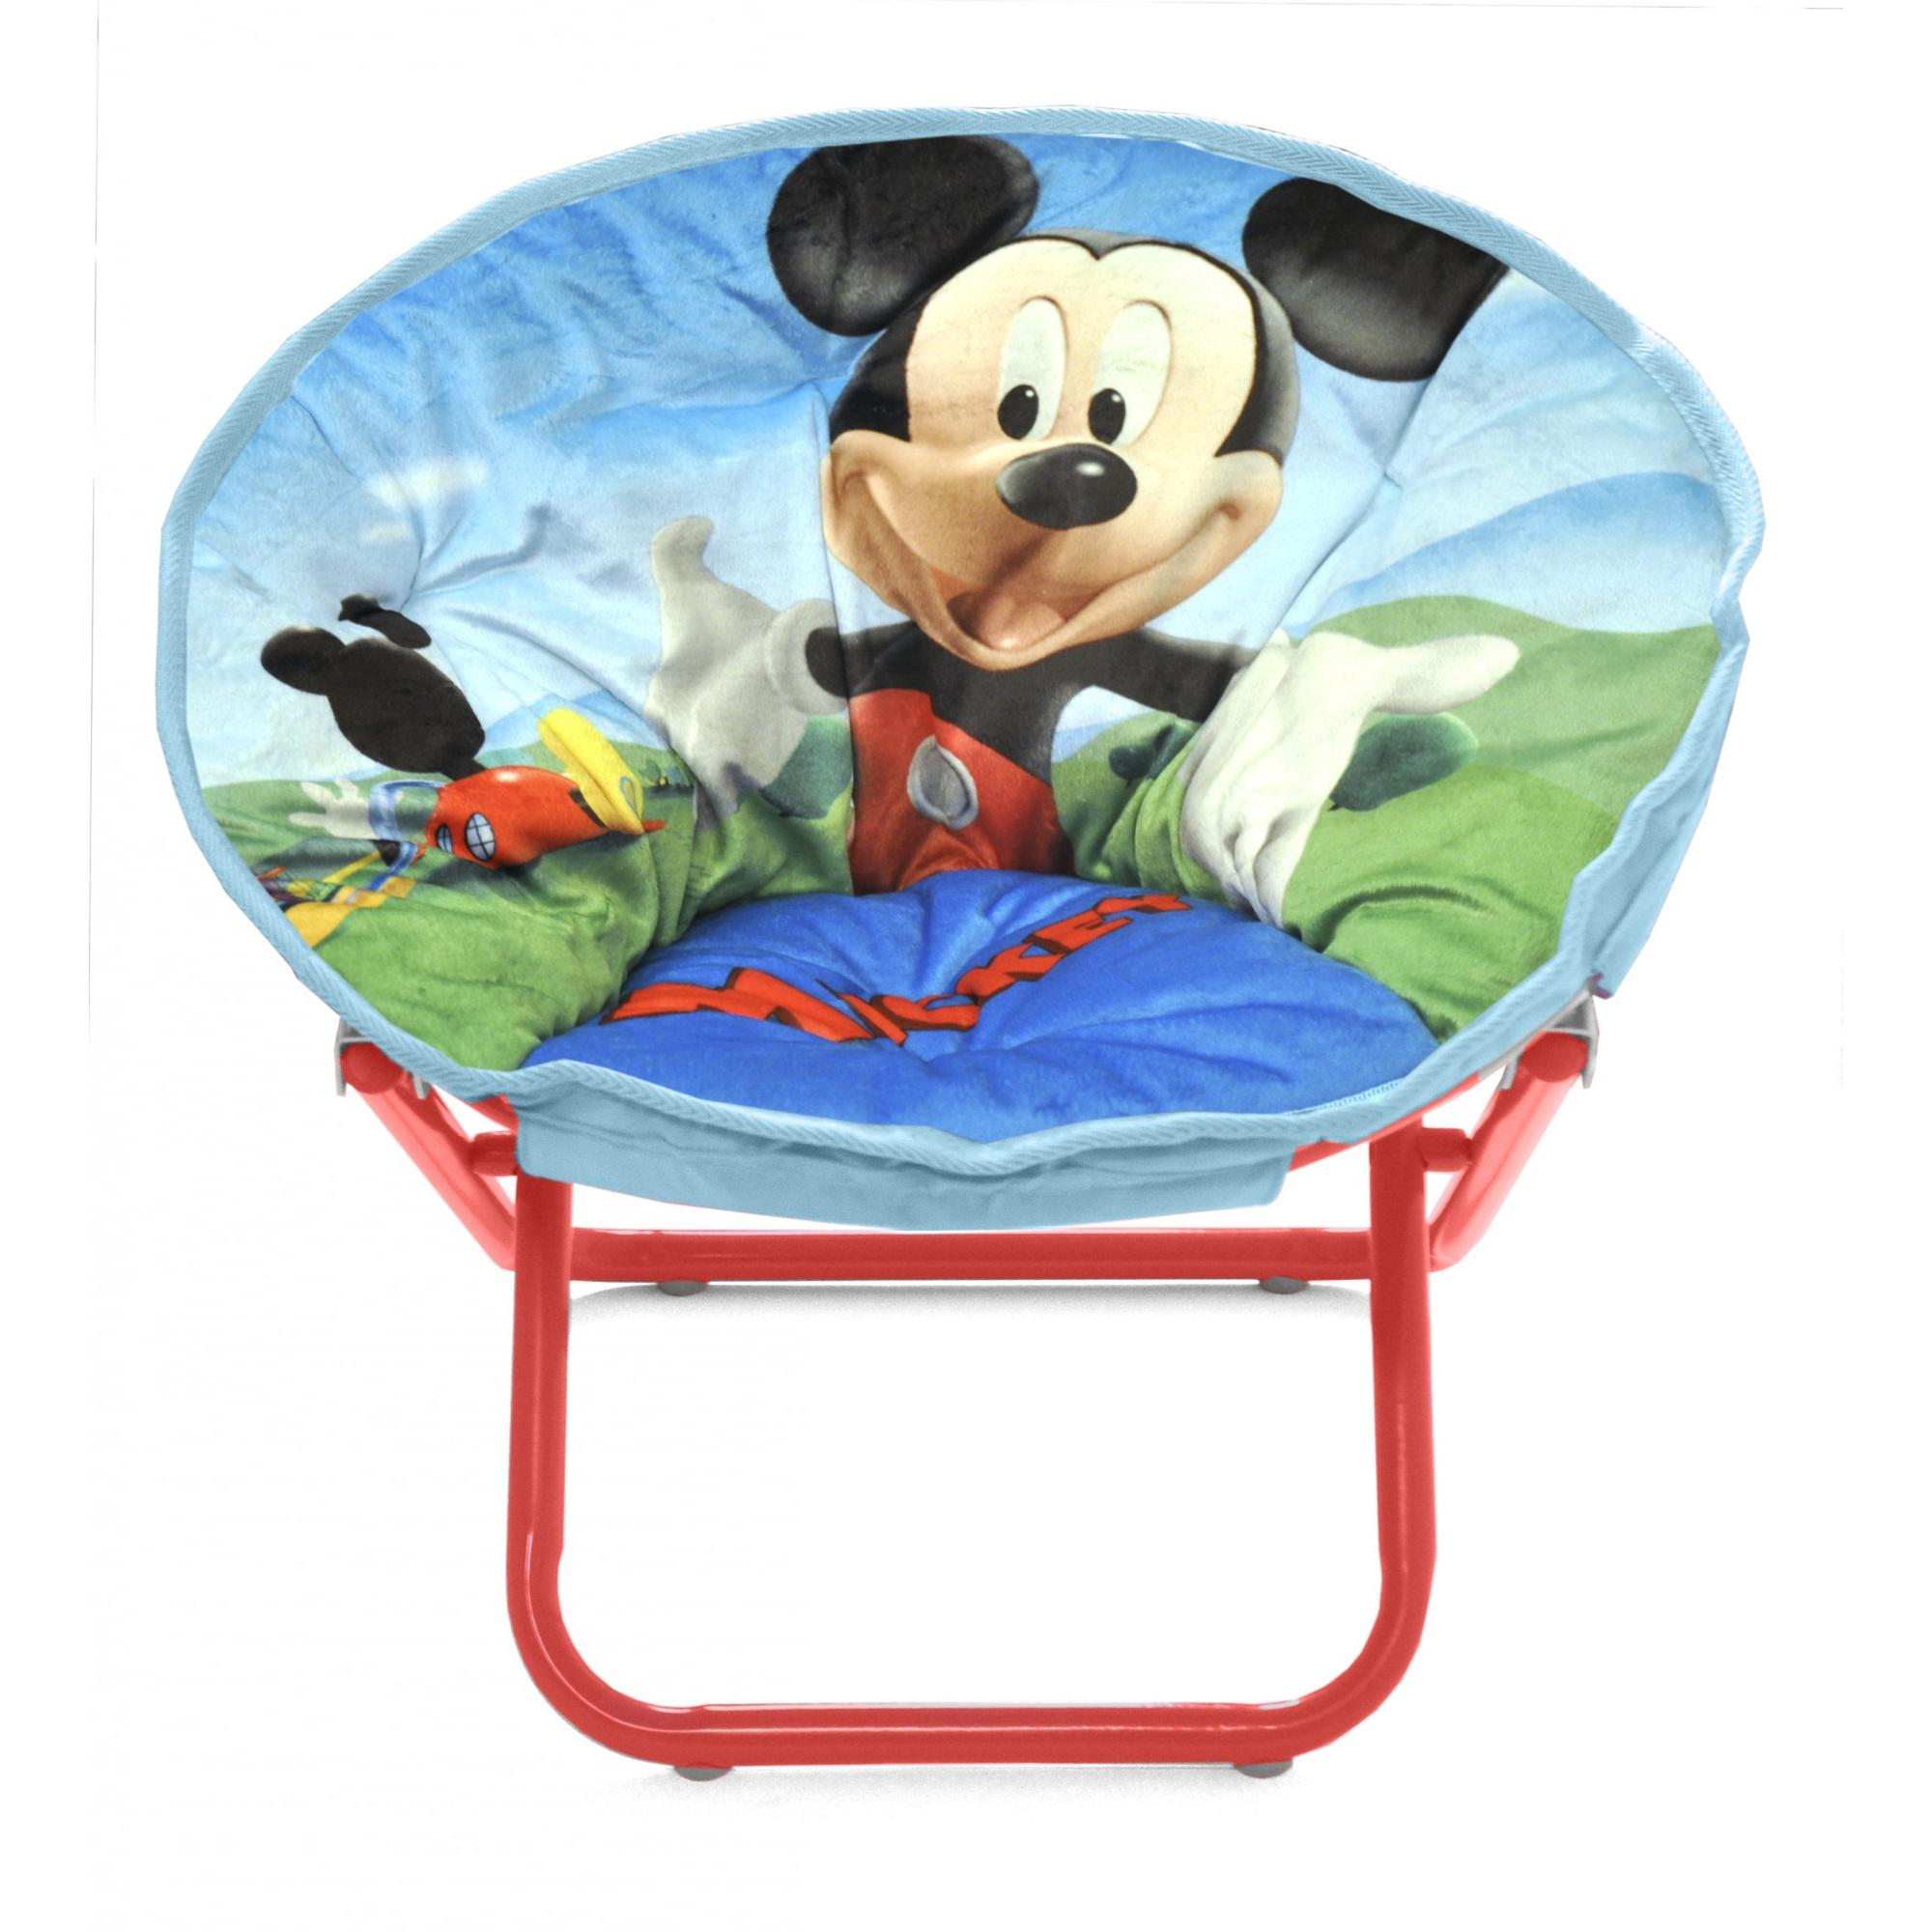 Mickey Mouse Mini Collapsible�Saucer Chair by Disney